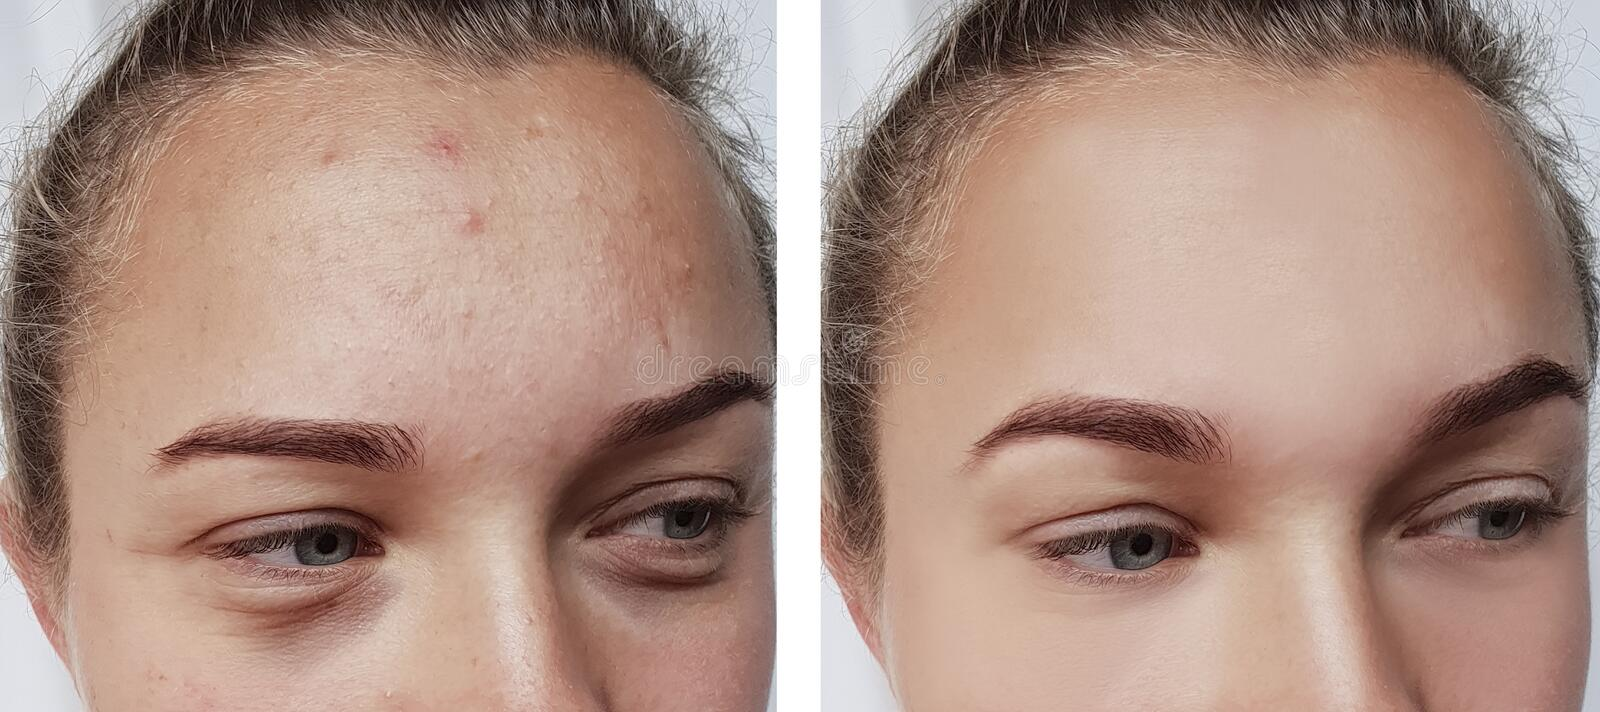 Girl wrinkles eyes before and after treatments skin removal bags royalty free stock photos